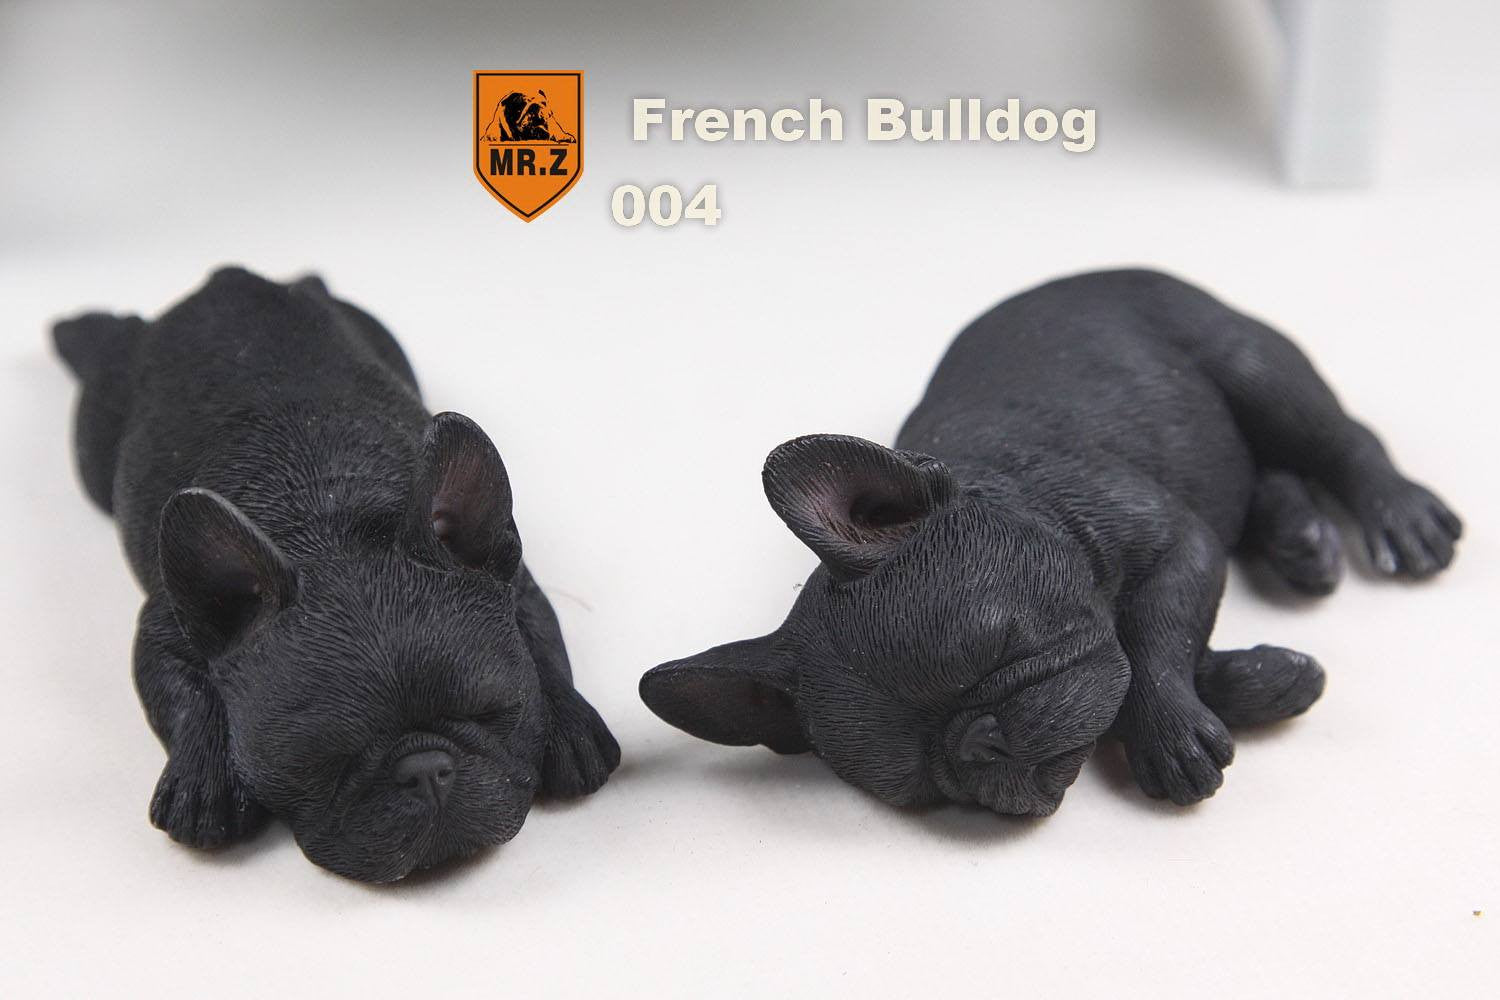 MR.Z - Real Animal Series No.9 - 1/6th Scale French Bulldog (Sleep Mode) 001-005 - Marvelous Toys - 20